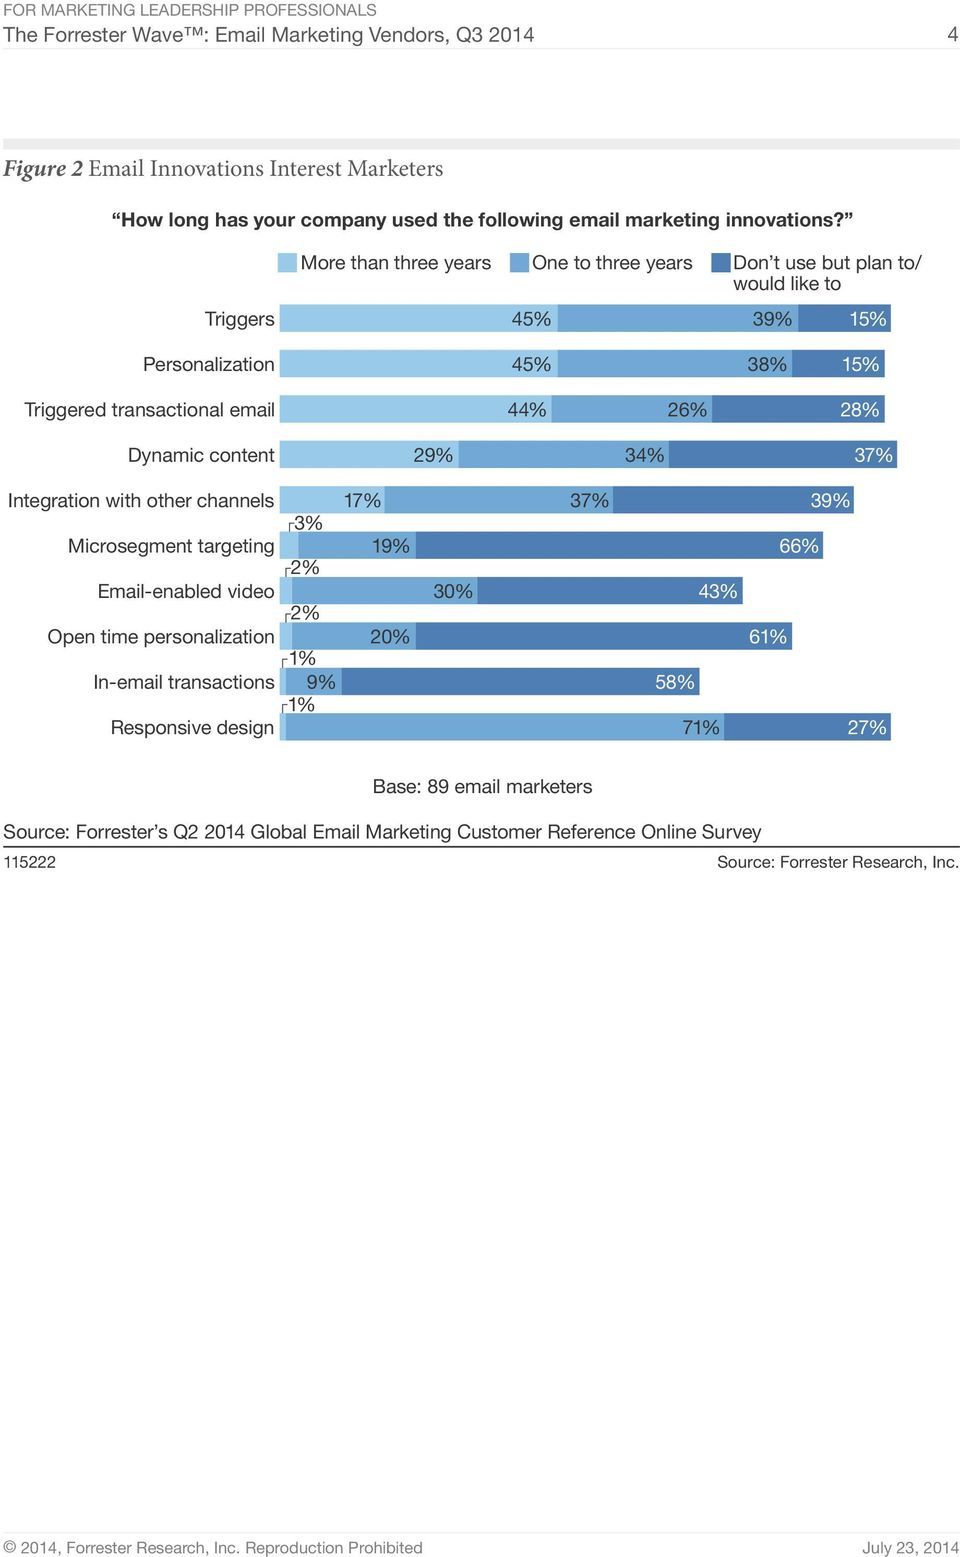 content 29% 34% 37% Integration with other channels 17% 37% 39% 3% Microsegment targeting 19% 66% 2% Email-enabled video 30% 43% 2% Open time personalization 20% 61% In-email